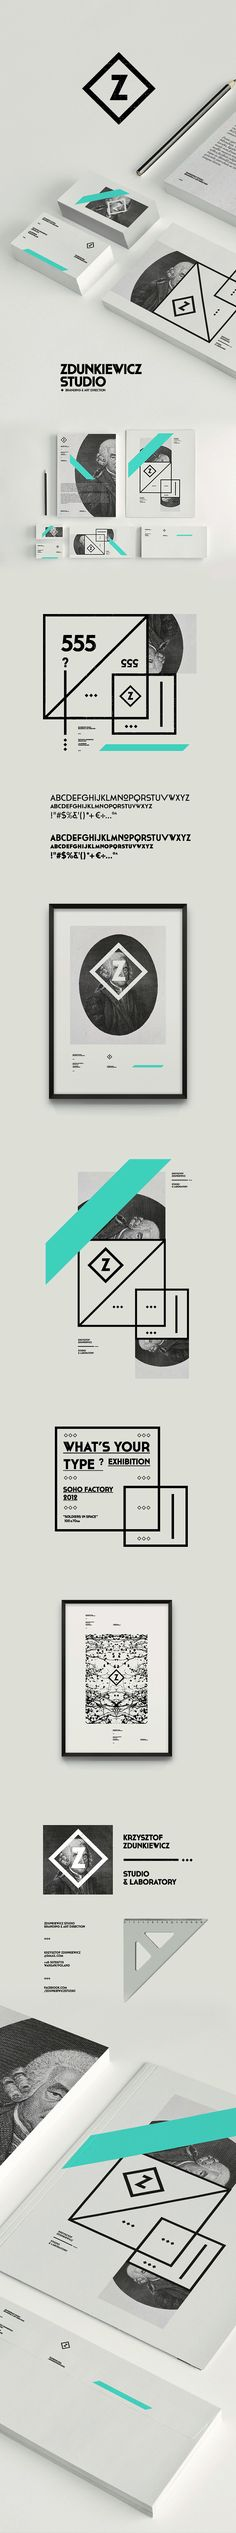 Zdunkiewicz Studio / Self Promotion on Behance                                                                                                                                                     More